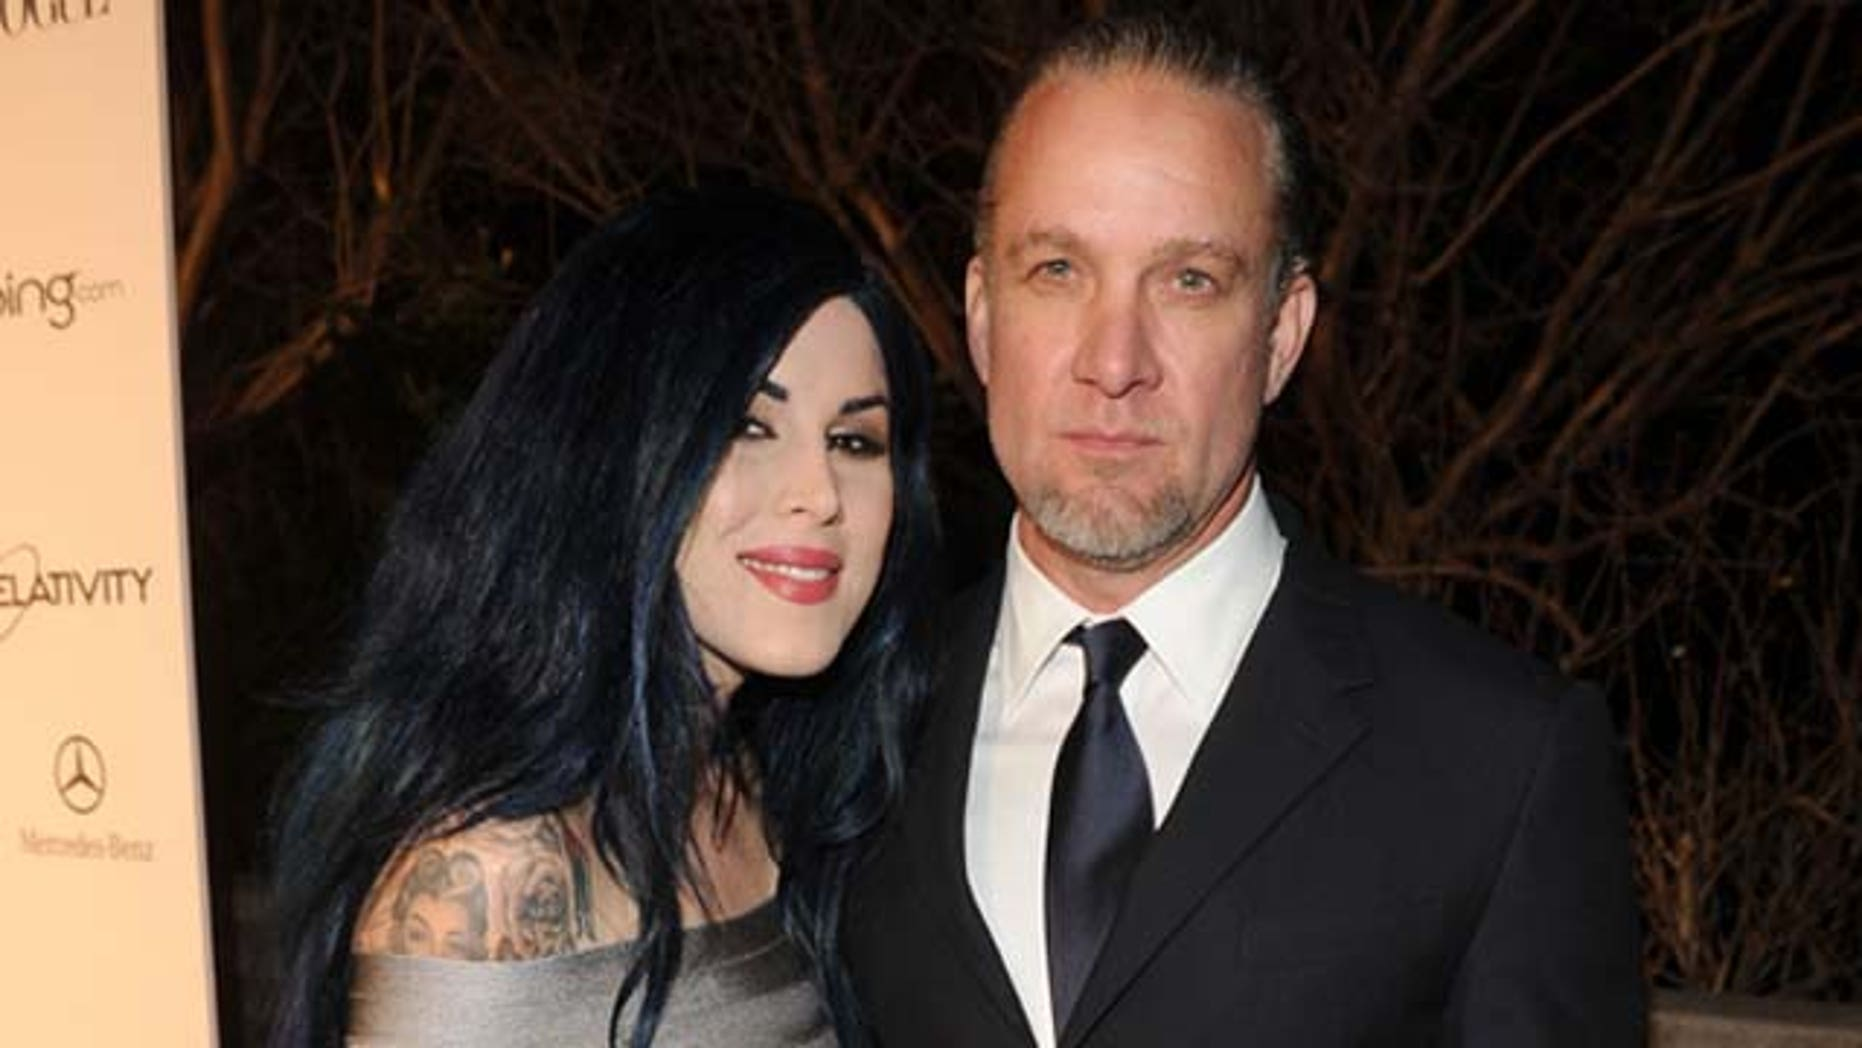 Jan. 15, 2011: TV Personalities Kat Von D and Jesse James attend the Art Of Elysium 'Heaven' Gala held at the California Science Center in Los Angeles, Calif.